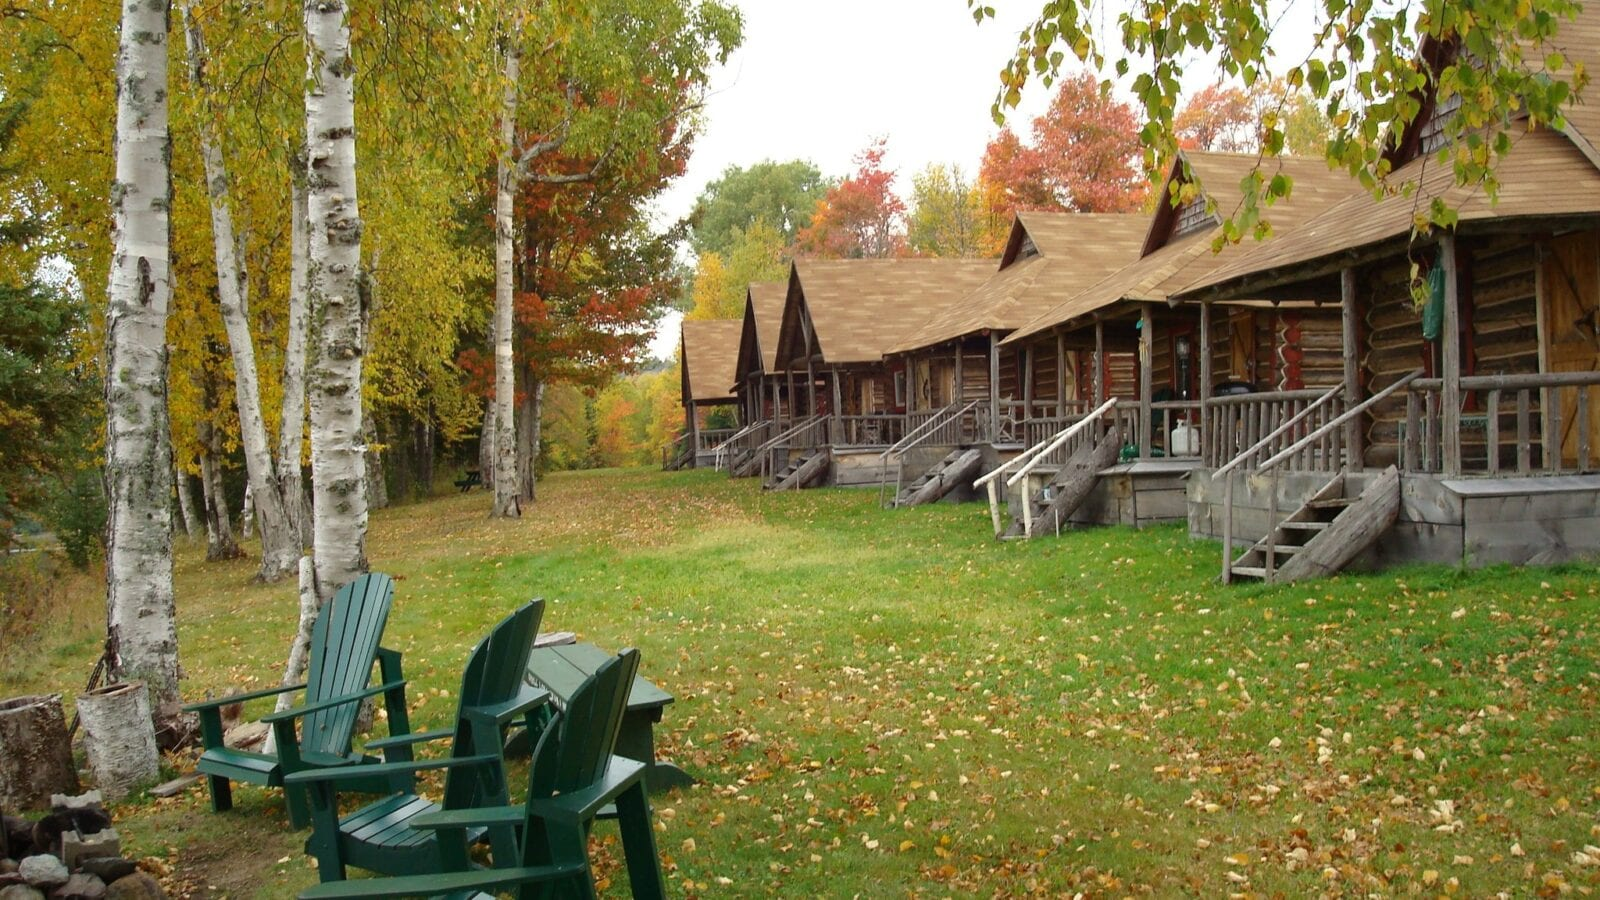 photo of six cabins in forest and outdoor seating area in autumn